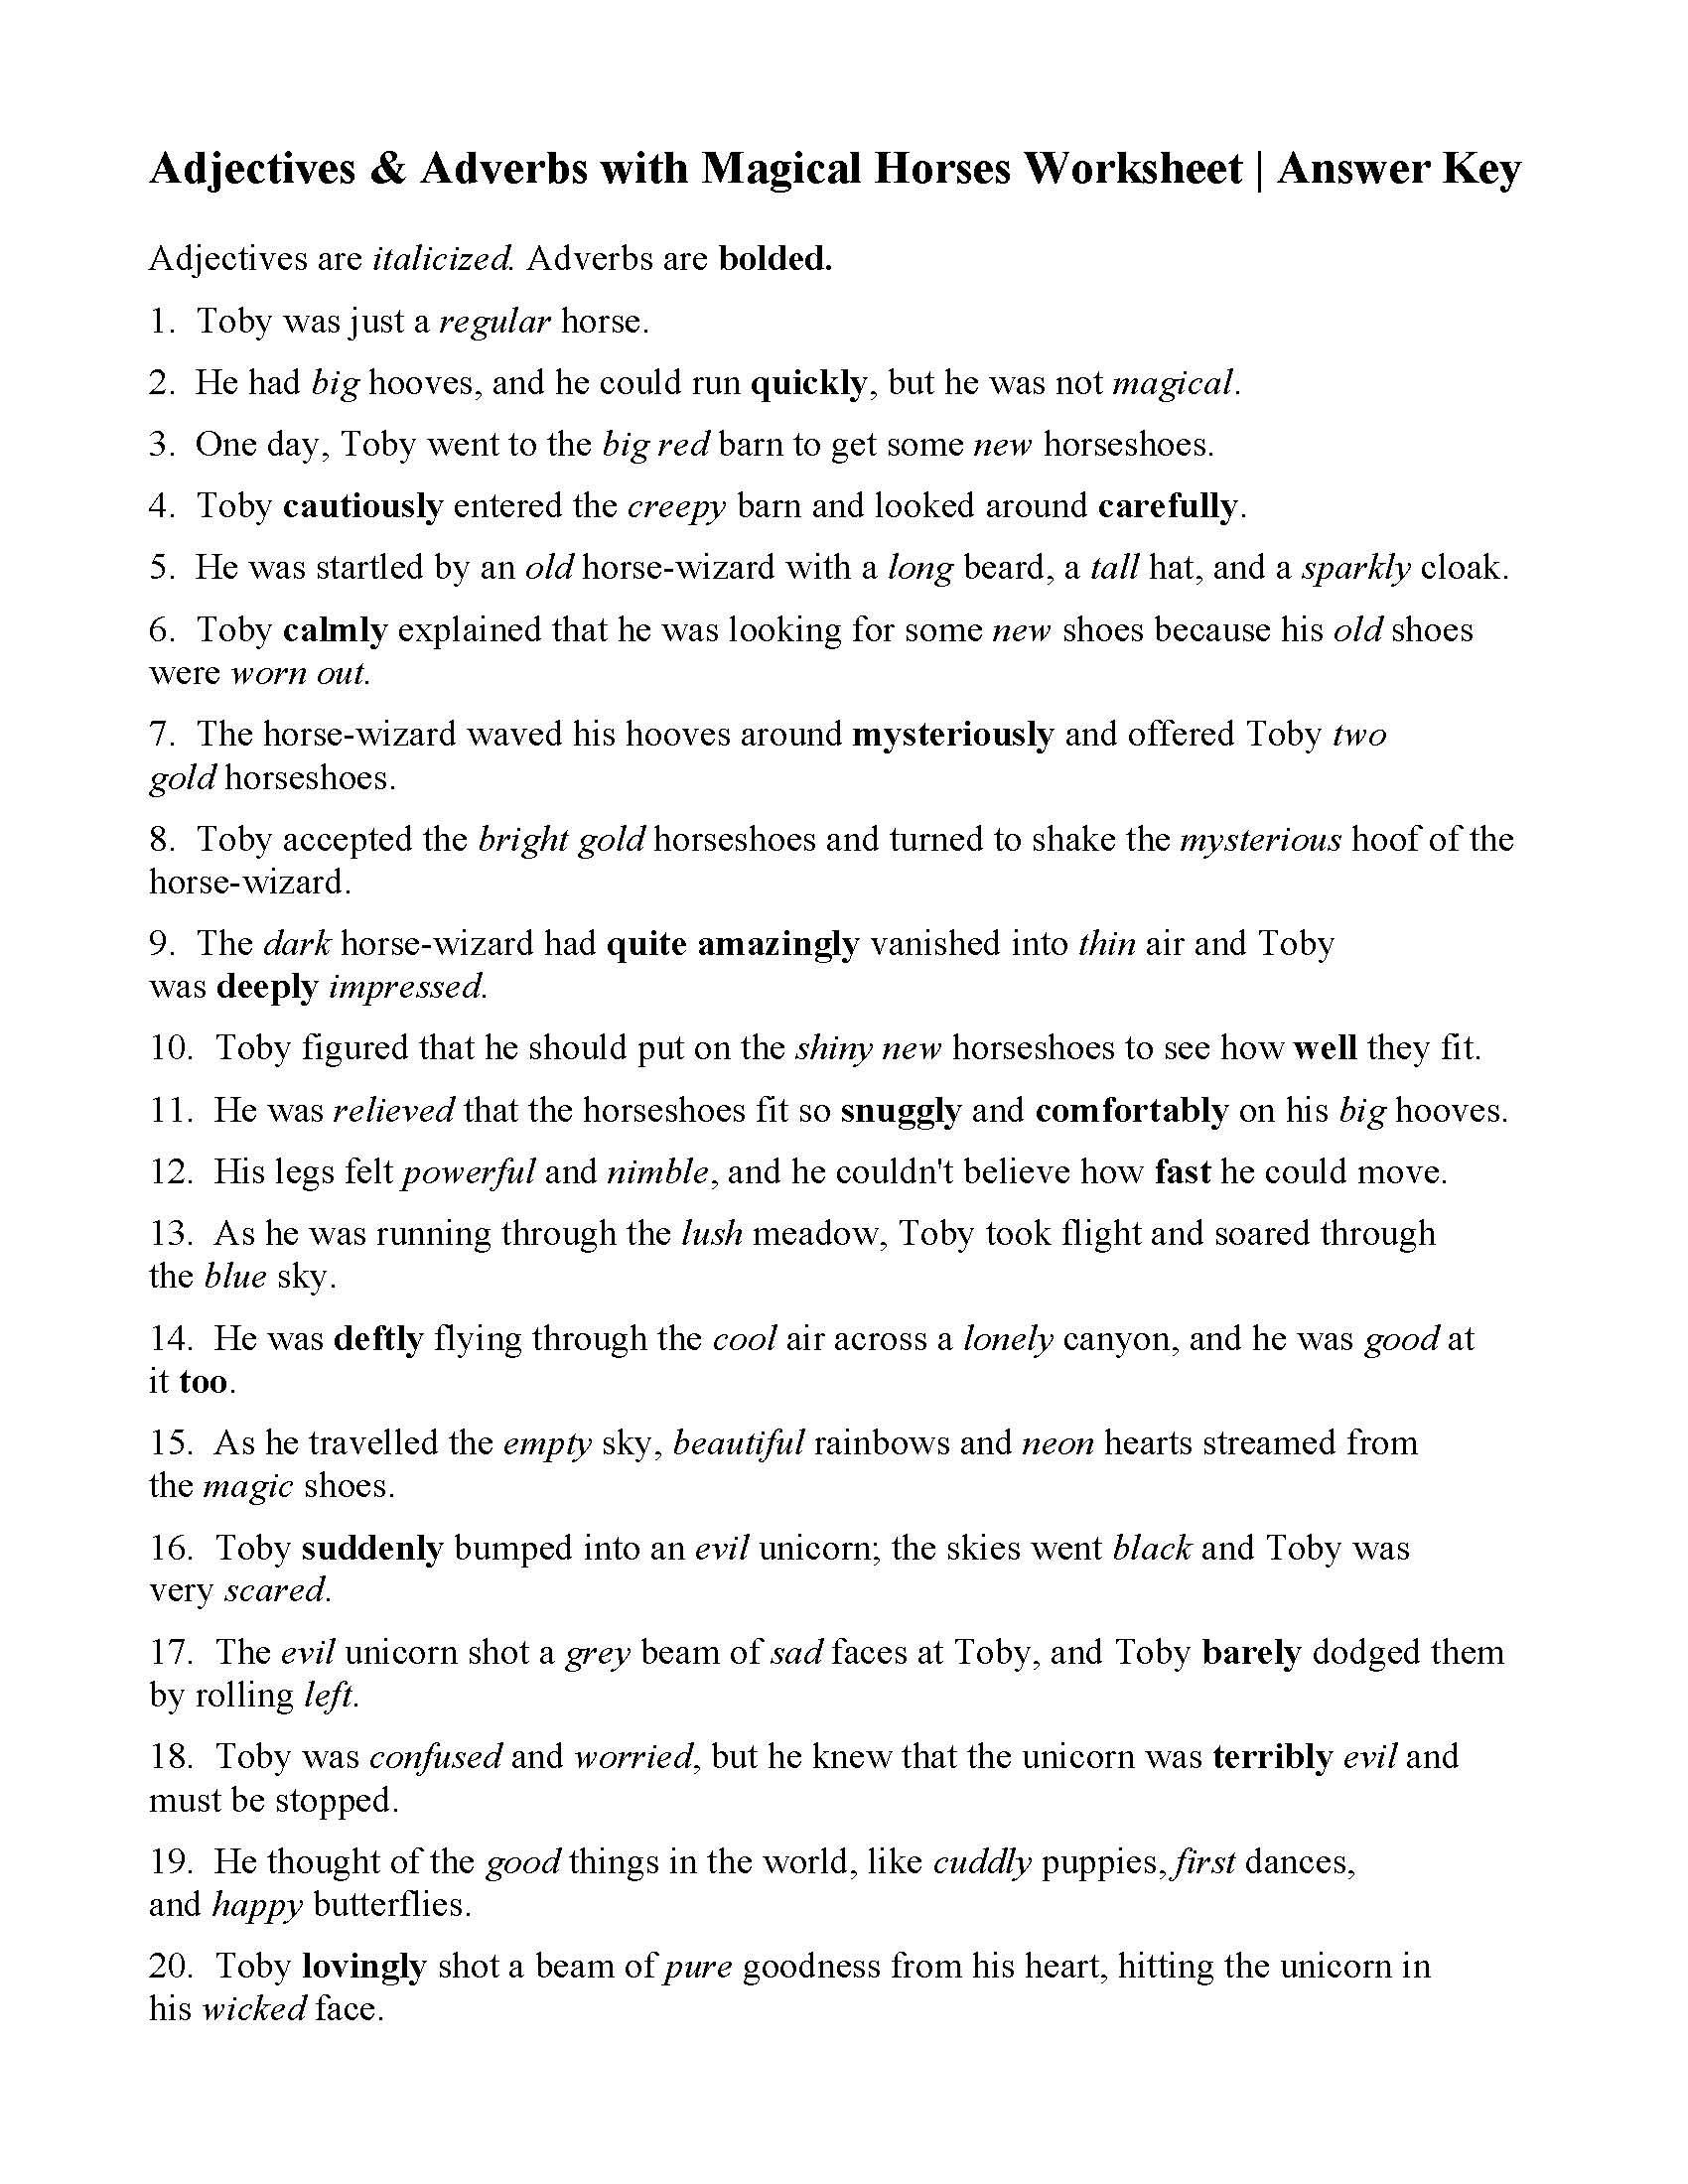 Adjectives And Adverbs With Magical Horses Worksheet Answers Adjectives worksheets for k12 kids and parents. adjectives and adverbs with magical